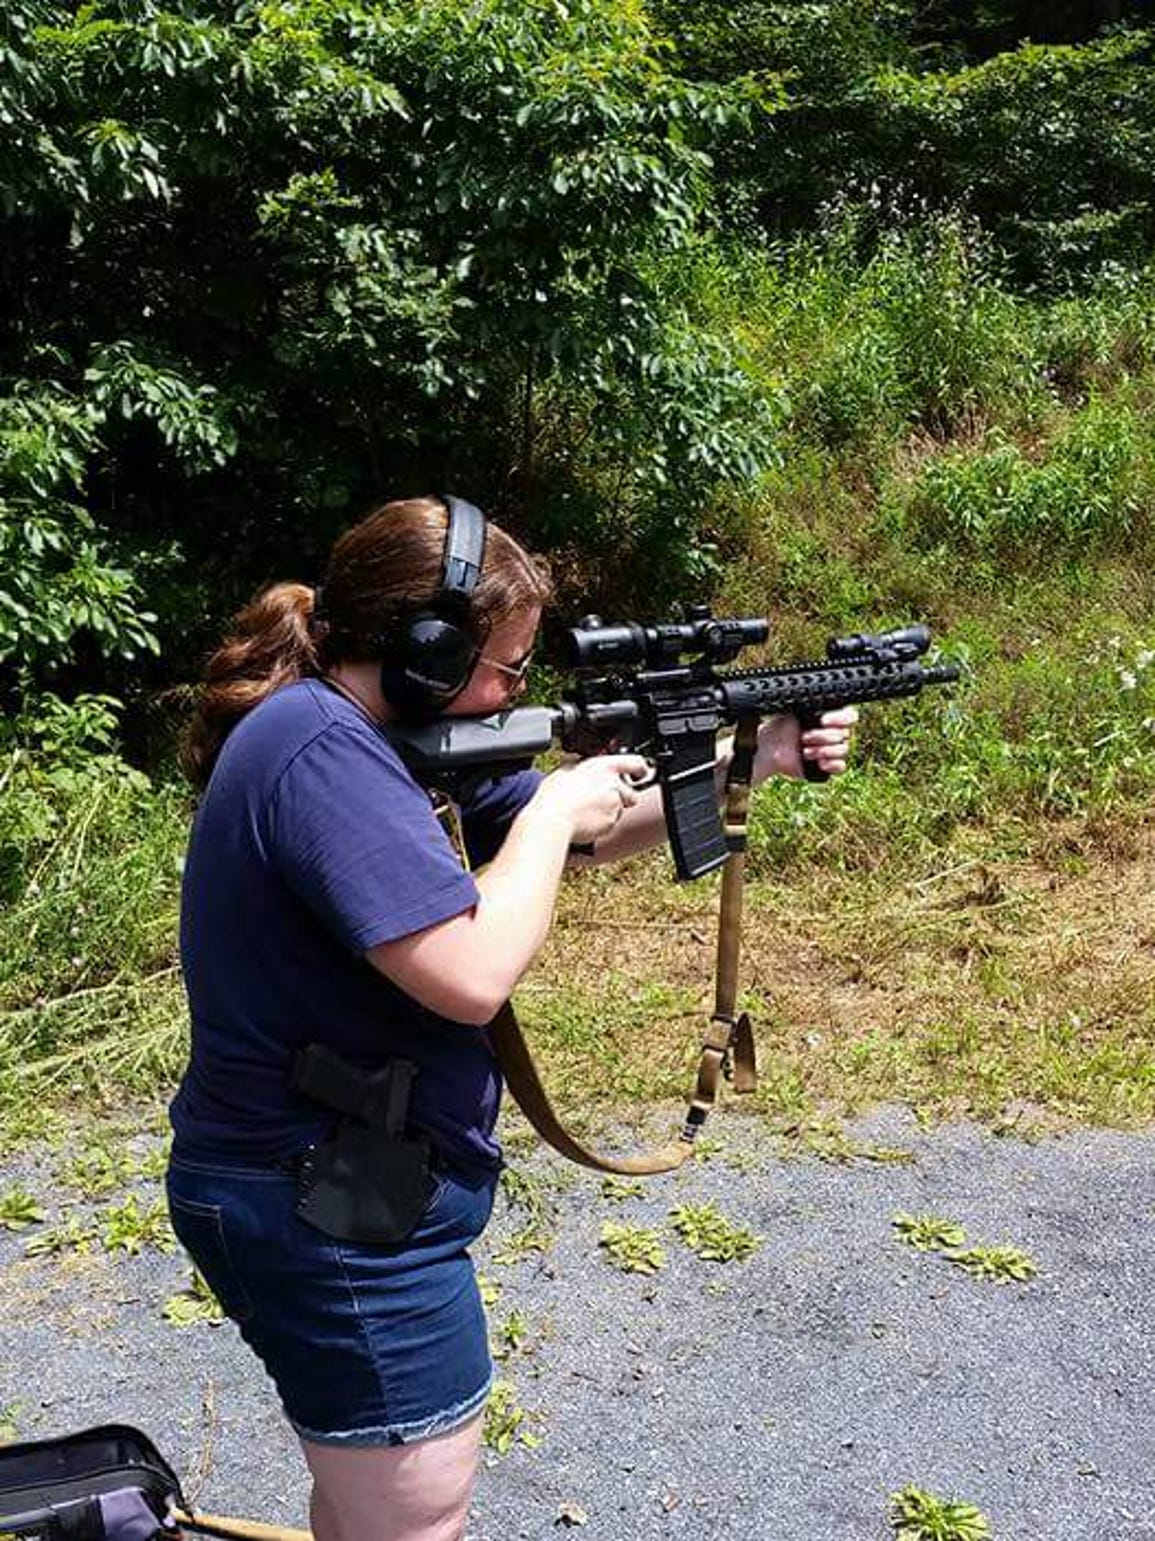 Sarah Thompson fires a .556 AR. She carries a Glock